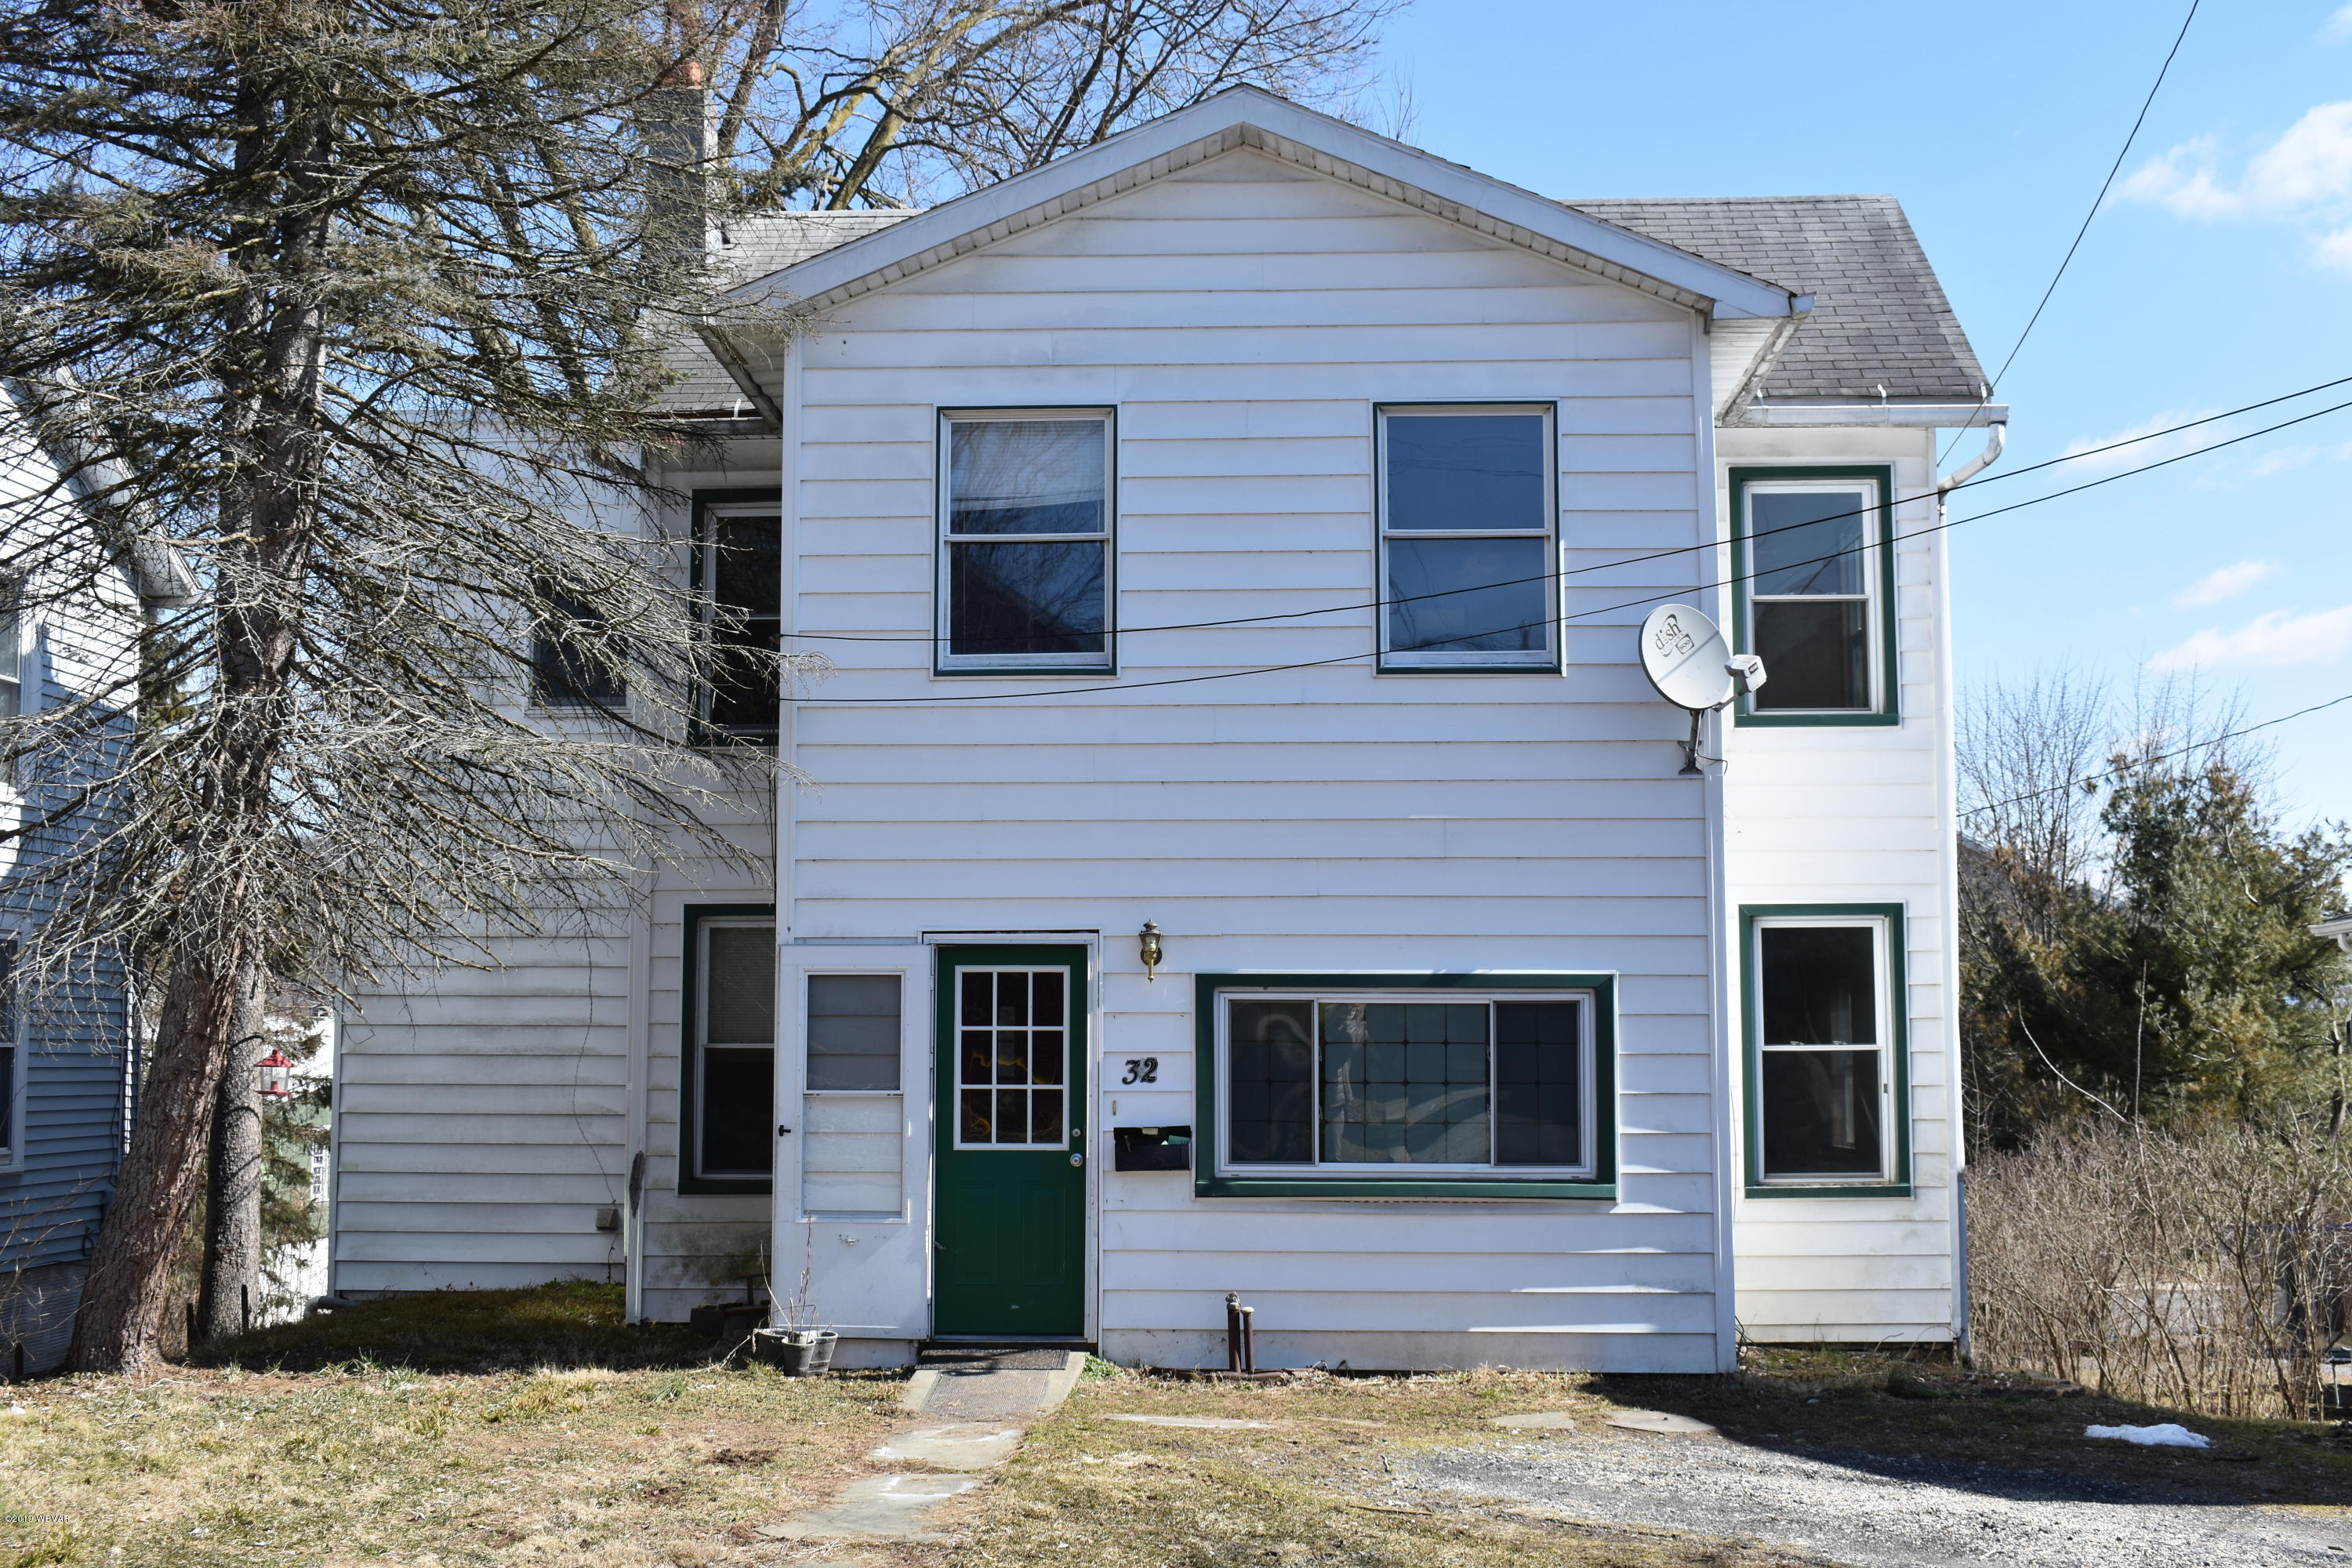 32 JONES STREET,Lock Haven,PA 17745,3 Bedrooms Bedrooms,2 BathroomsBathrooms,Residential,JONES,WB-86624